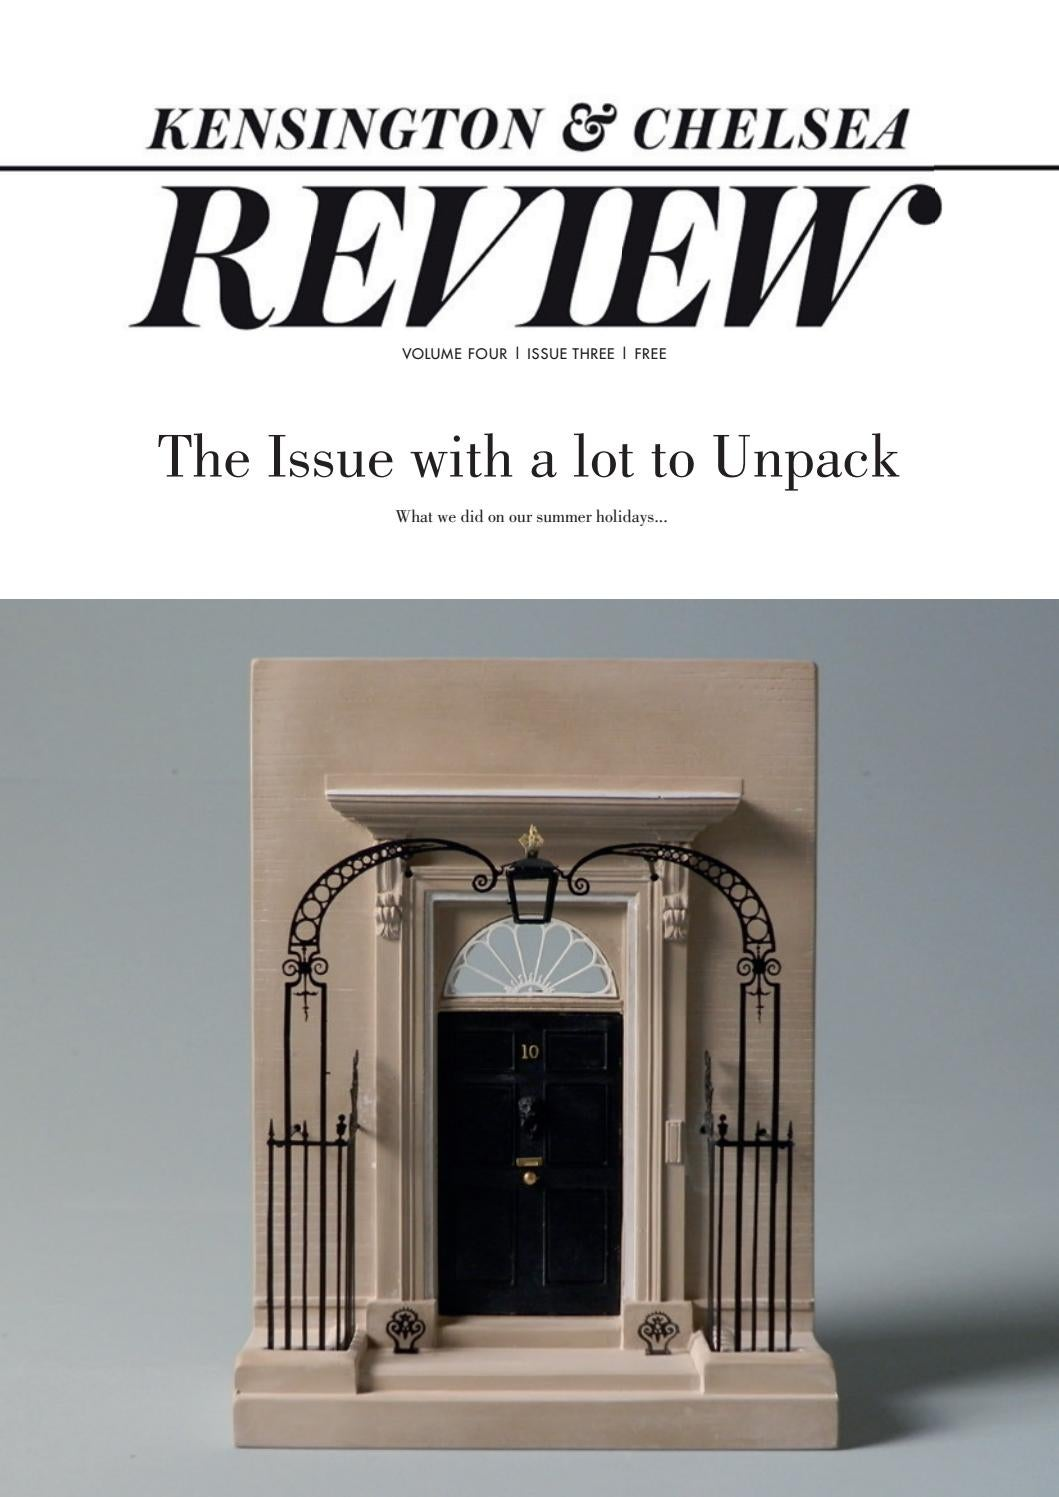 2a49cea4acacae Kensington and Chelsea Review - Unpack Issue - Autumn 2018 by Kensington  and Chelsea Review - issuu